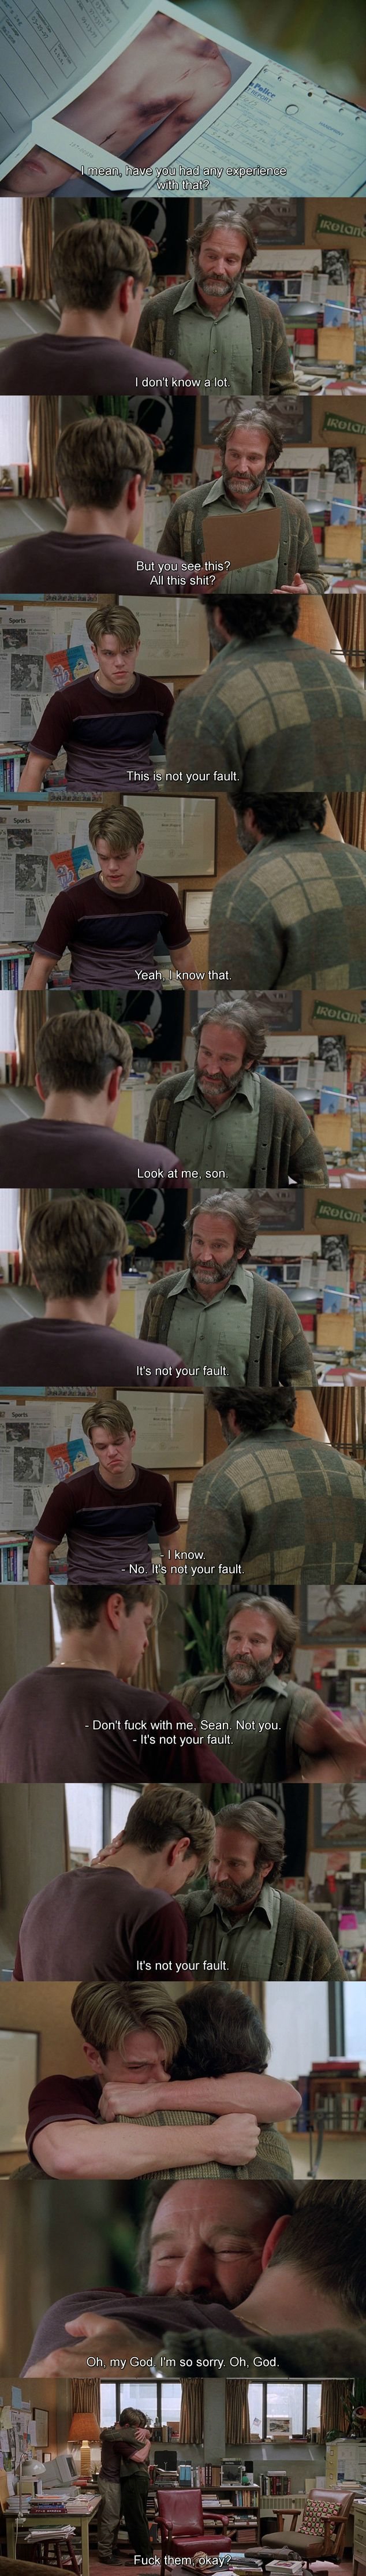 It's not your fault, Mr. Williams - Imgur----Good Will Hunting, one of the best movies in existence